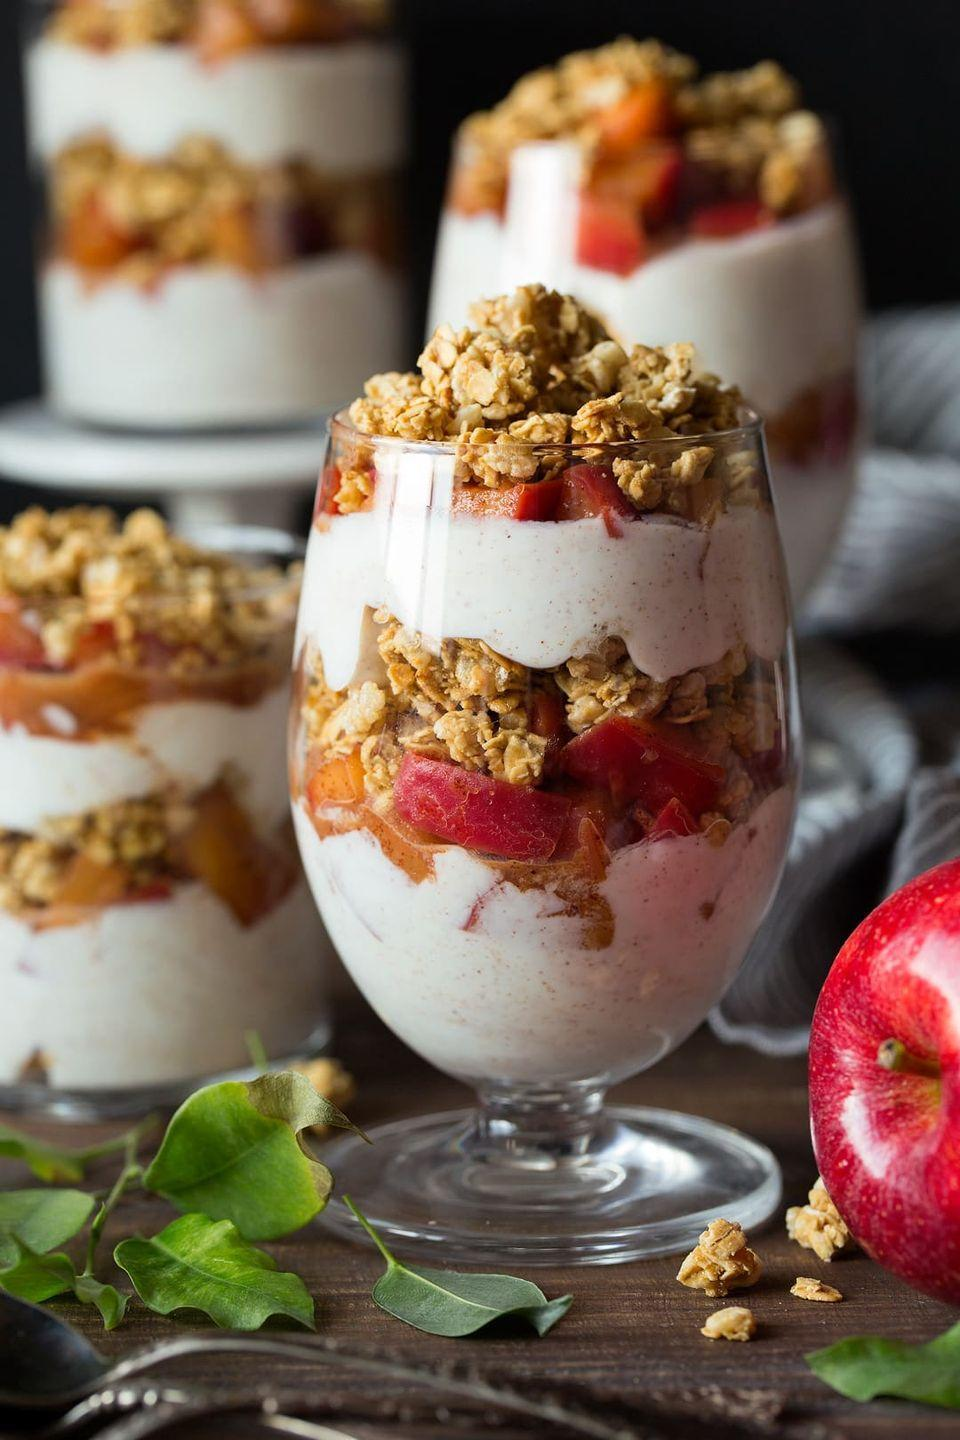 """<p>If you're a fan of apple crumble, you'll love this parfait recipe. Layers of Greek yogurt, softened spiced apples, and crunchy granola make this healthy breakfast a real treat.</p><p><strong>Get the recipe at <a href=""""https://www.cookingclassy.com/apple-cinnamon-granola-parfaits/"""" rel=""""nofollow noopener"""" target=""""_blank"""" data-ylk=""""slk:Cooking Classy"""" class=""""link rapid-noclick-resp"""">Cooking Classy</a>.</strong></p><p><strong><a class=""""link rapid-noclick-resp"""" href=""""https://go.redirectingat.com?id=74968X1596630&url=https%3A%2F%2Fwww.walmart.com%2Fsearch%2F%3Fquery%3Dpioneer%2Bwoman%2Bmeasuring%2Bcup&sref=https%3A%2F%2Fwww.thepioneerwoman.com%2Ffood-cooking%2Fmeals-menus%2Fg34922086%2Fhealthy-breakfast-ideas%2F"""" rel=""""nofollow noopener"""" target=""""_blank"""" data-ylk=""""slk:SHOP MEASURING CUPS"""">SHOP MEASURING CUPS</a><br></strong></p>"""